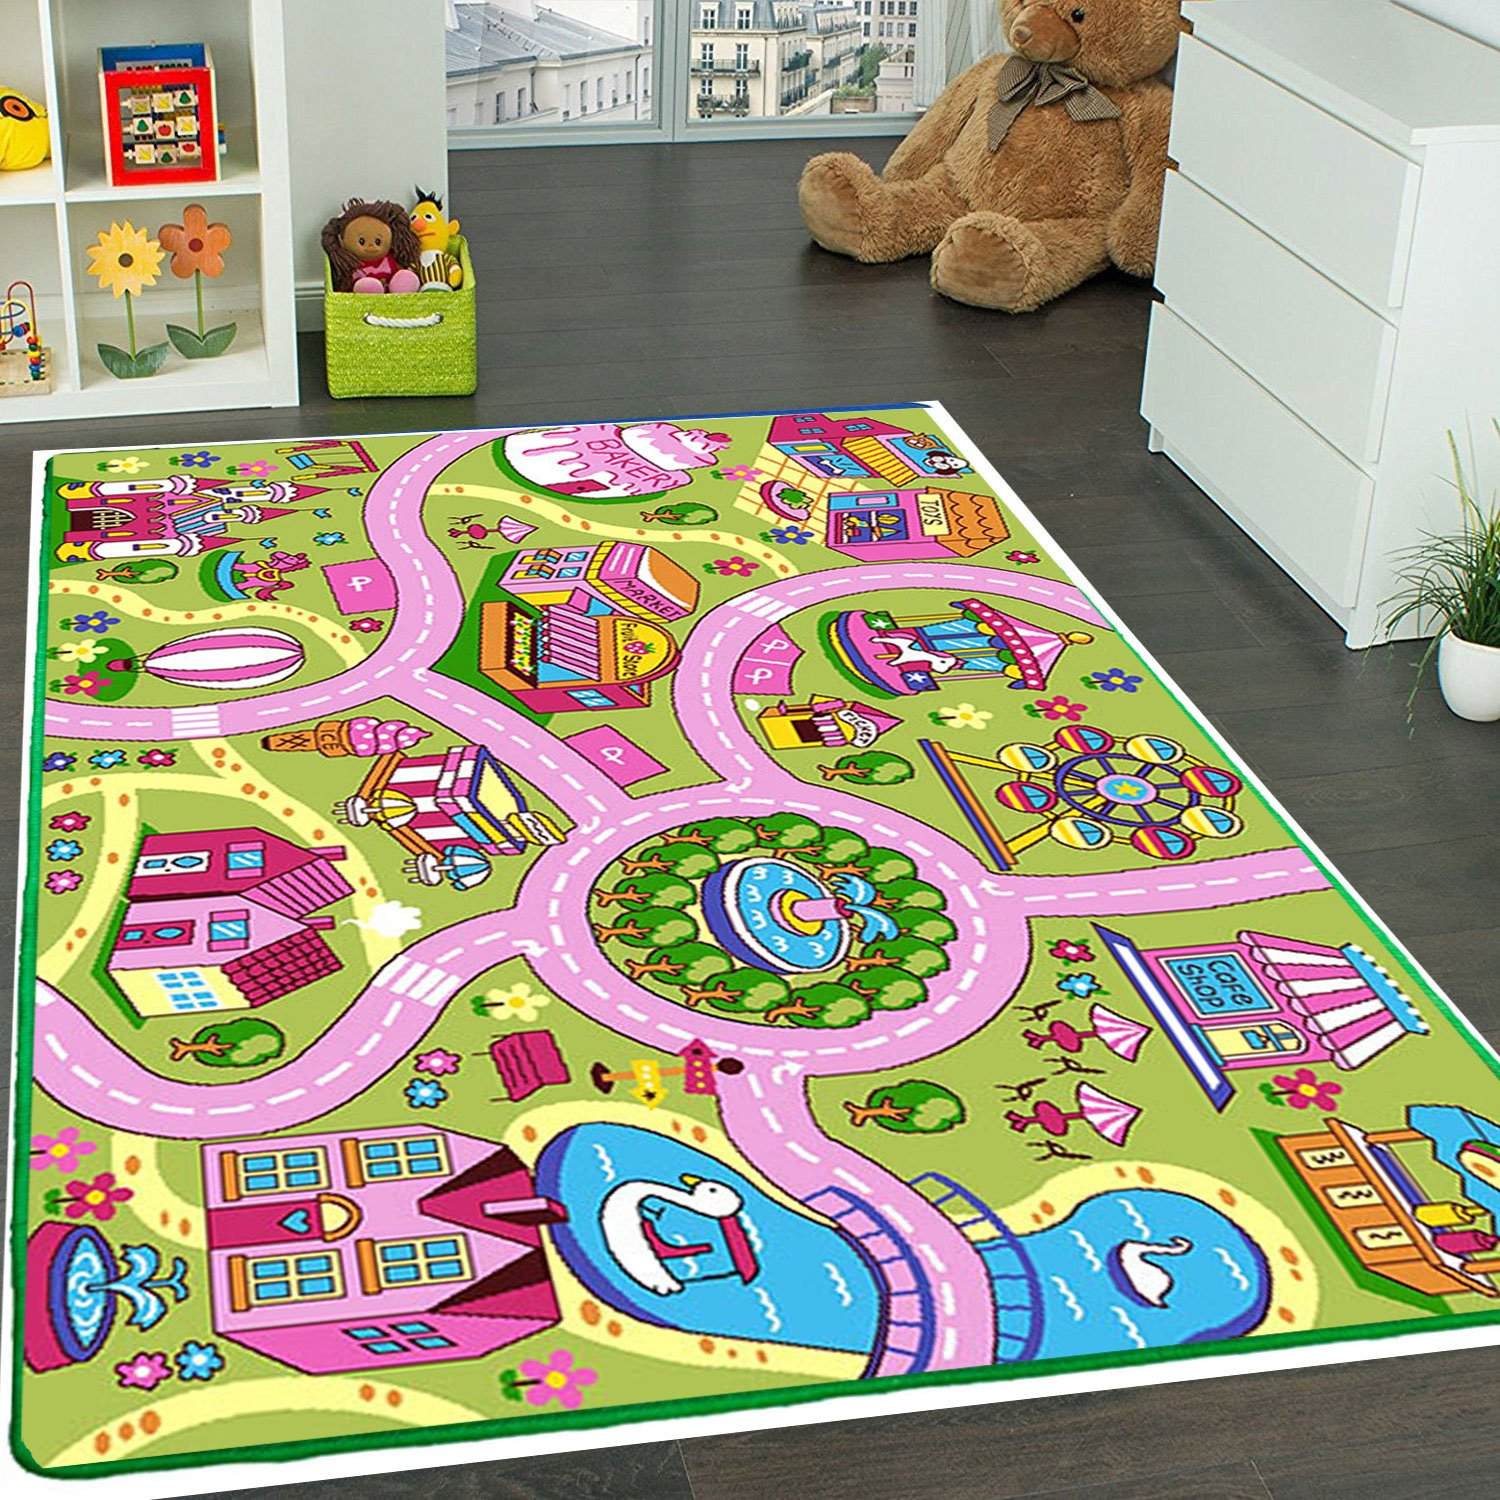 Kids Rug Fun Land Play Rug 5' X 7' Children Area Rug - Non Skid Gel Backing (59'' x 82'') Manufacturer's Suggested Retail Price $149.99